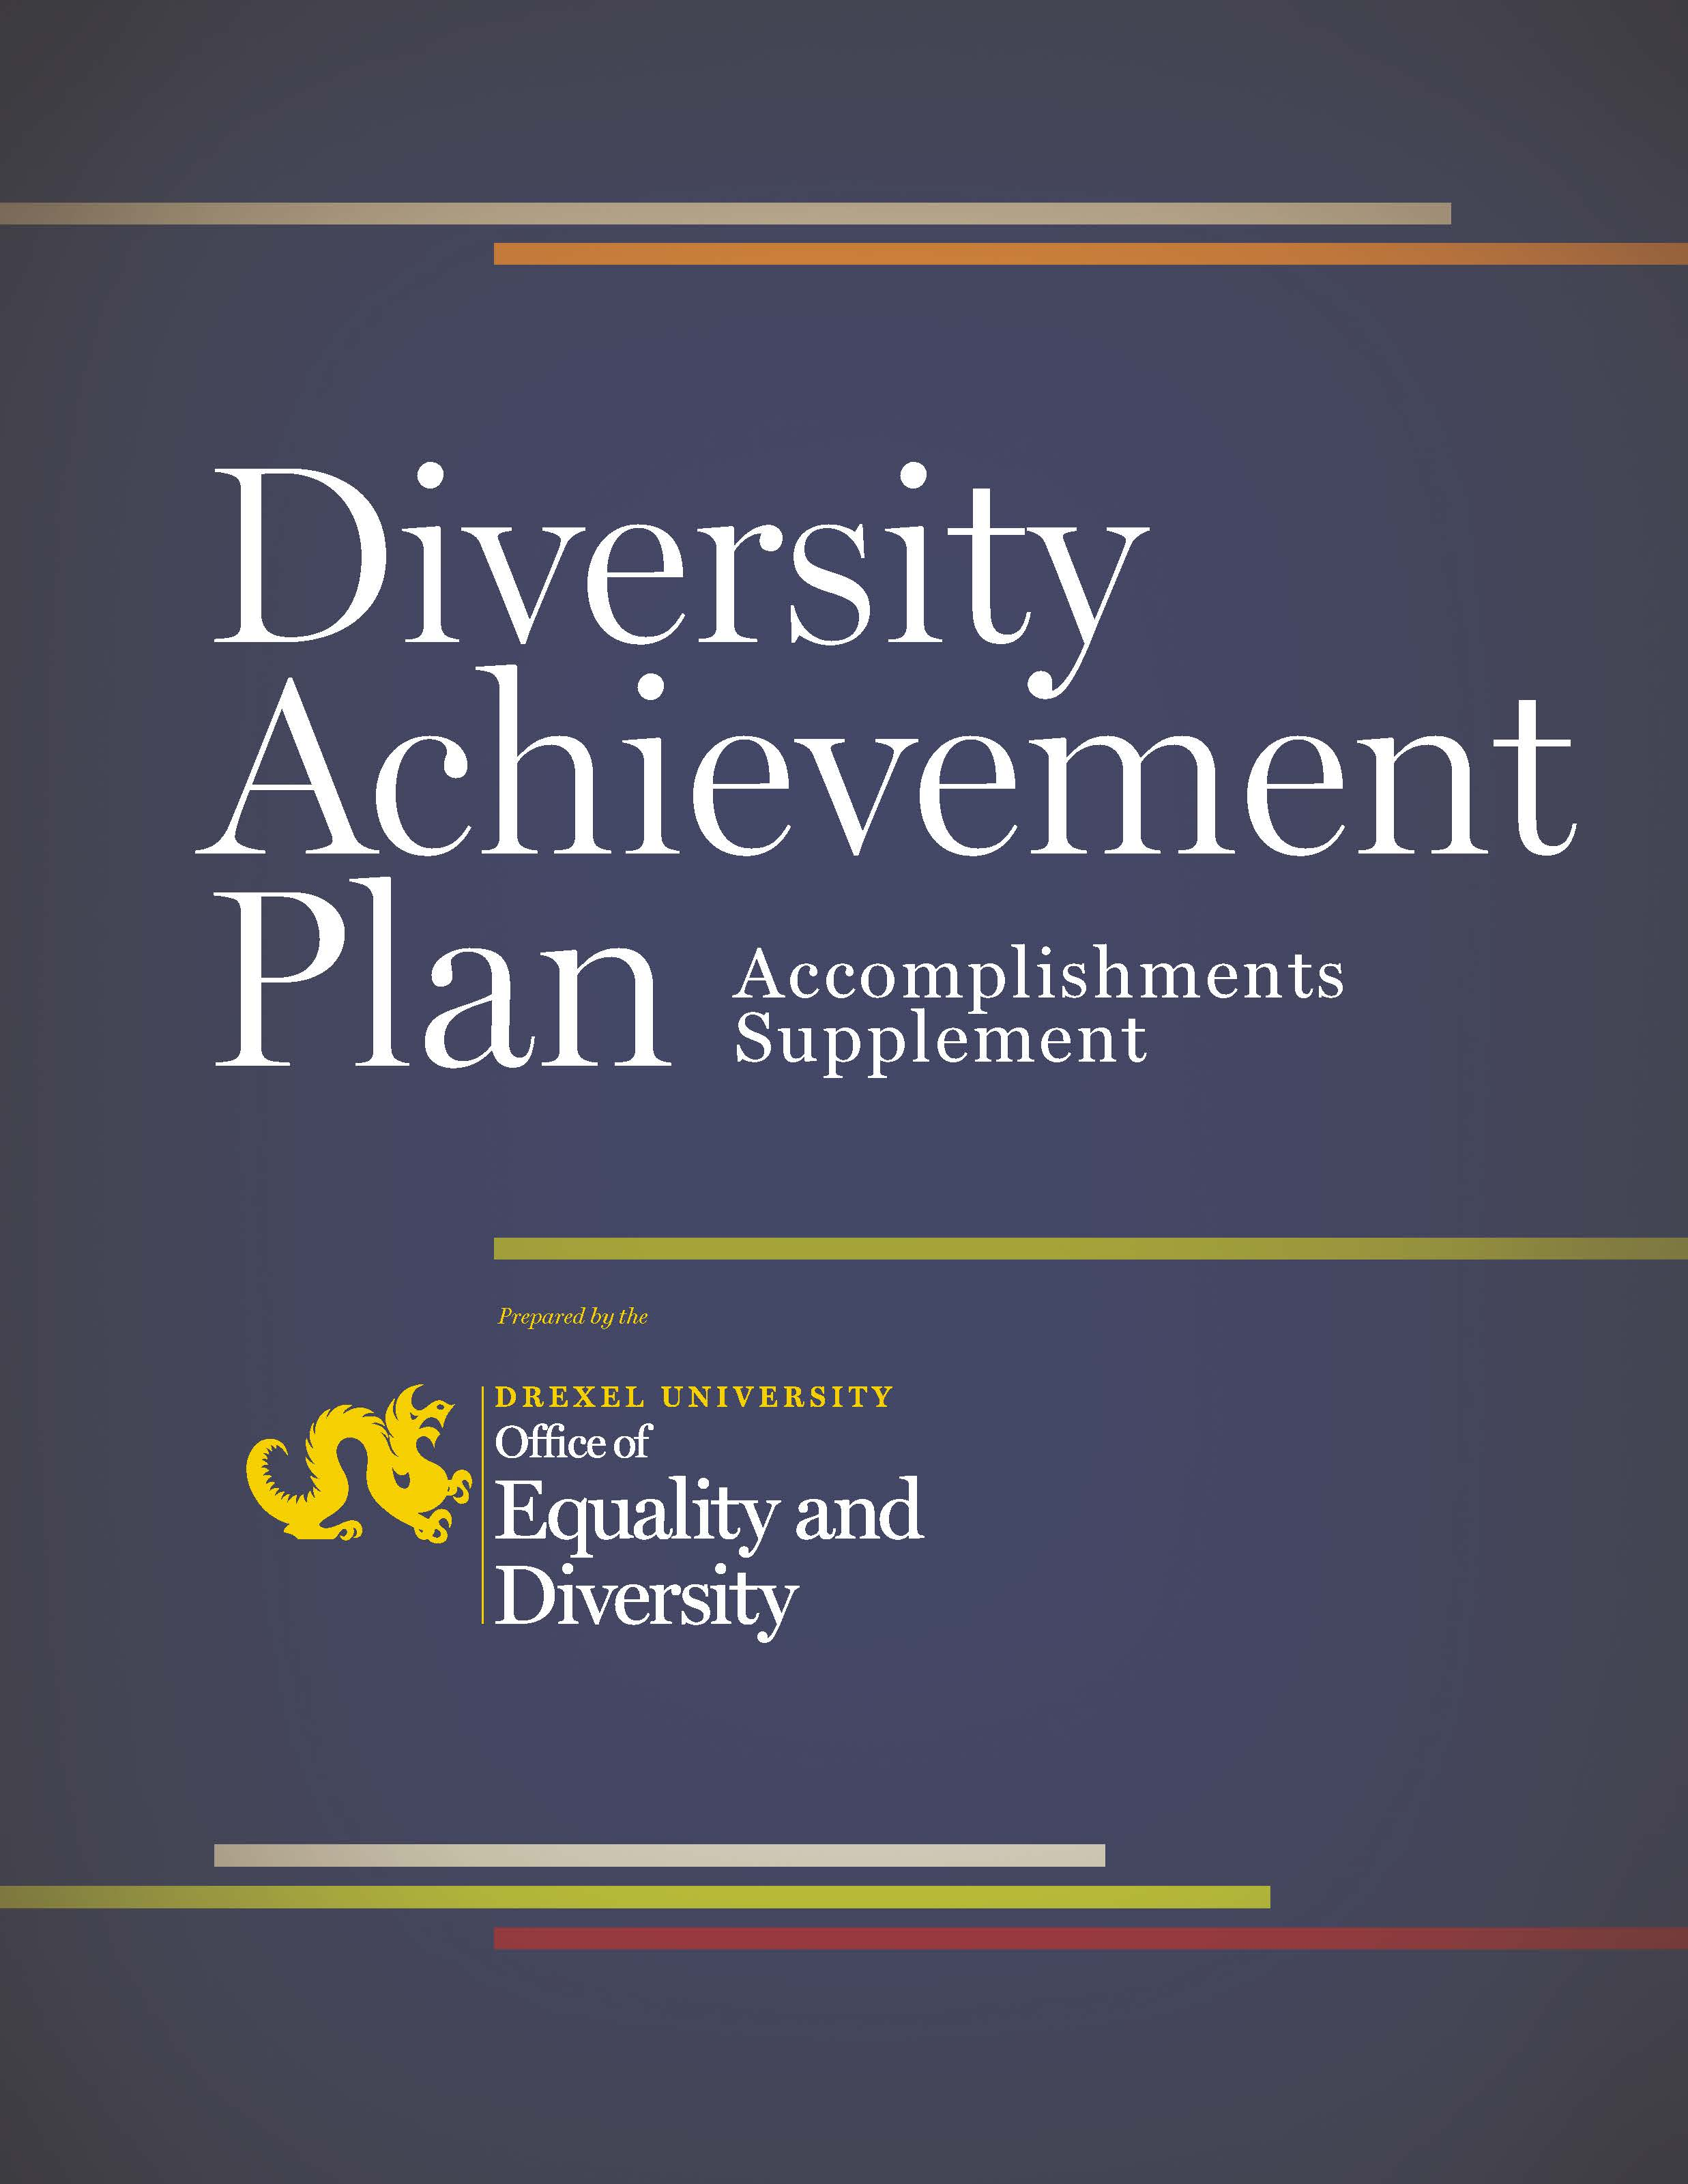 Image of Diversity Achievement Plan Accomplishments Supplement Cover